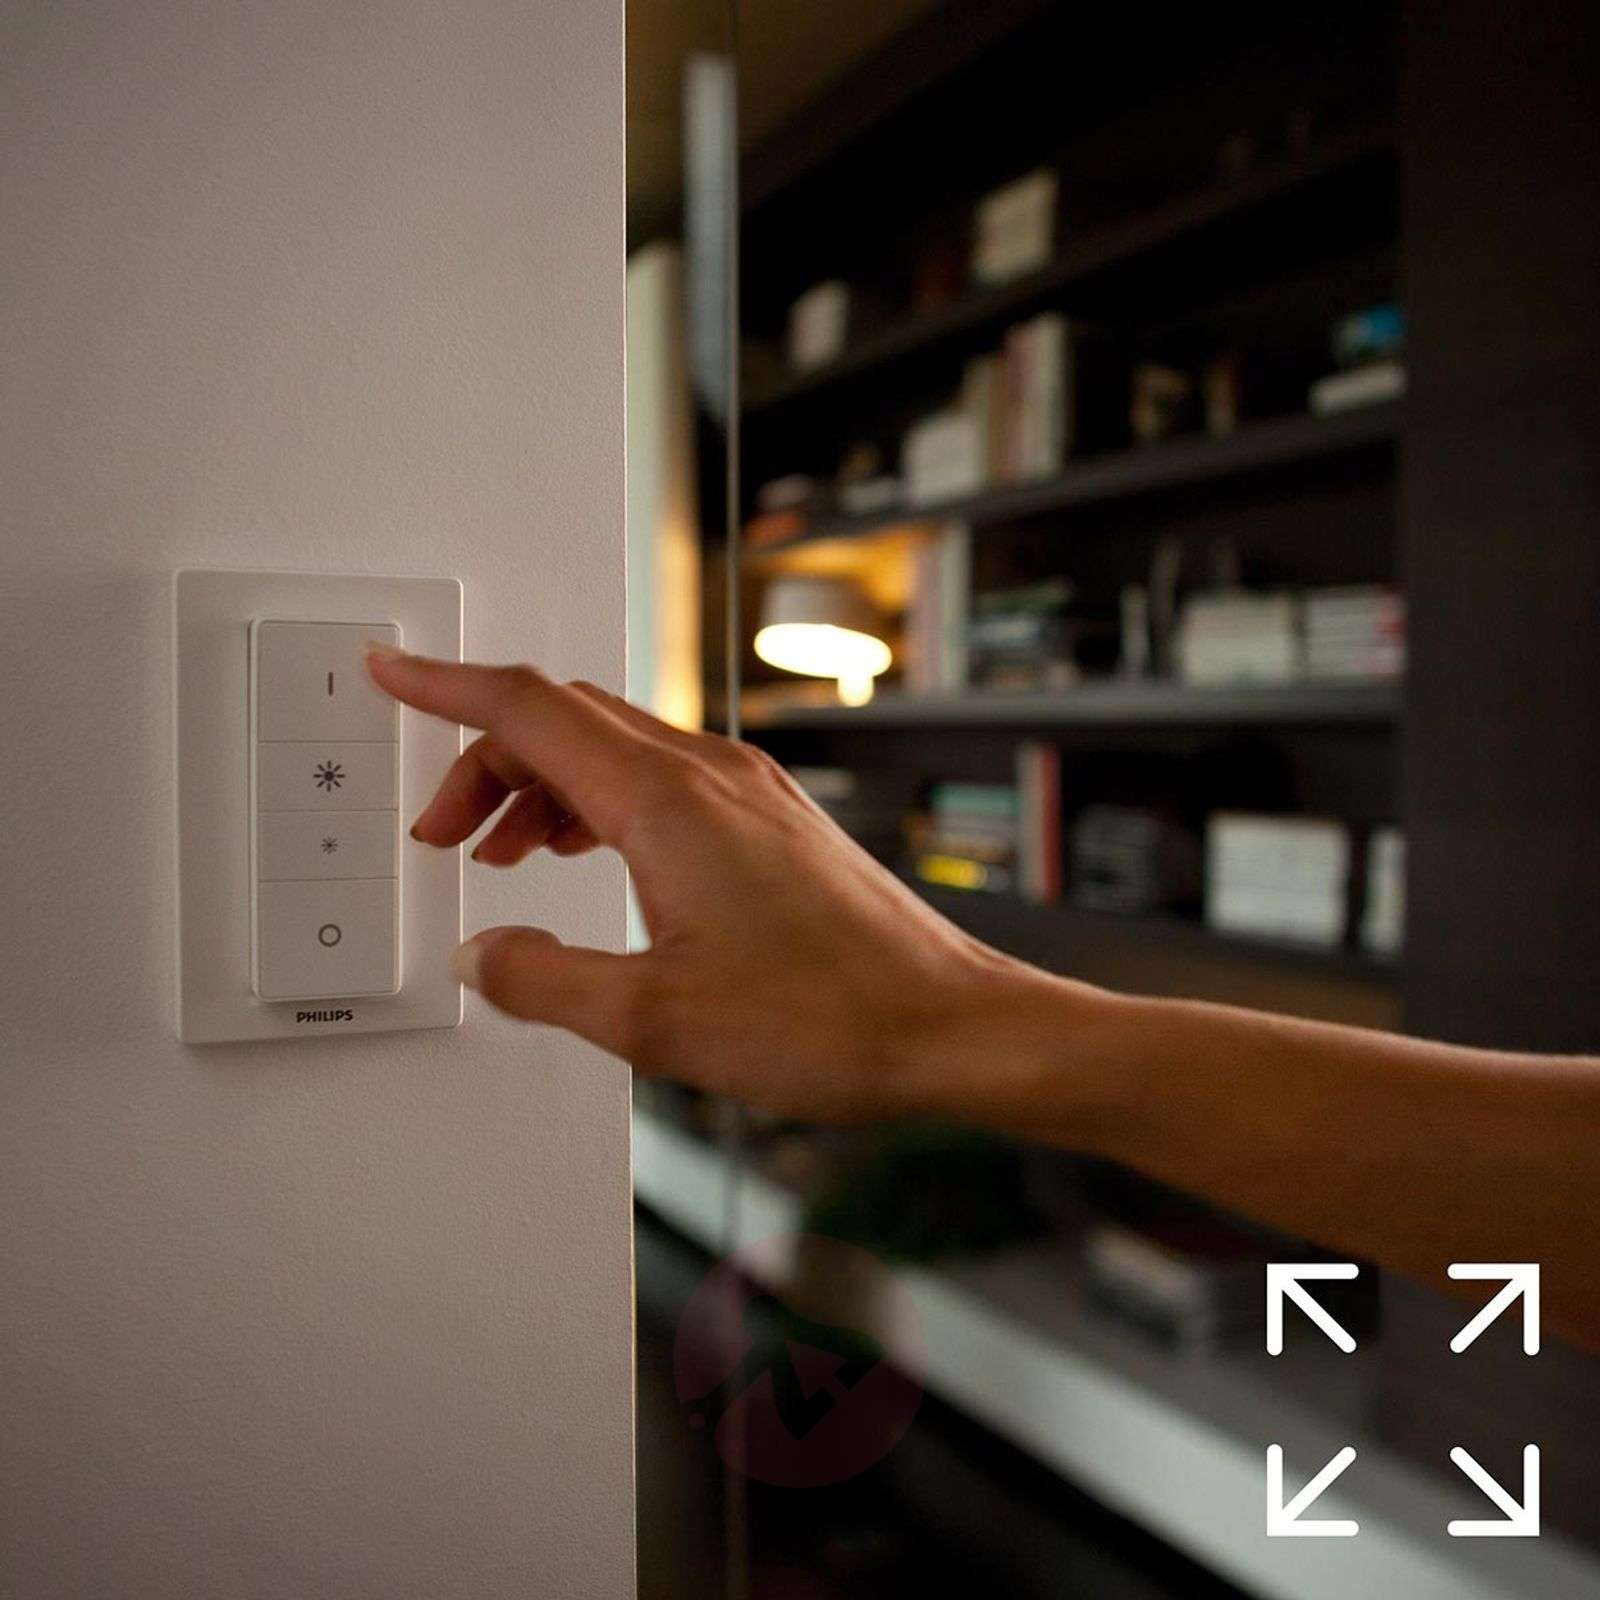 Philips Hue wireless dimmer switch-7532030-01